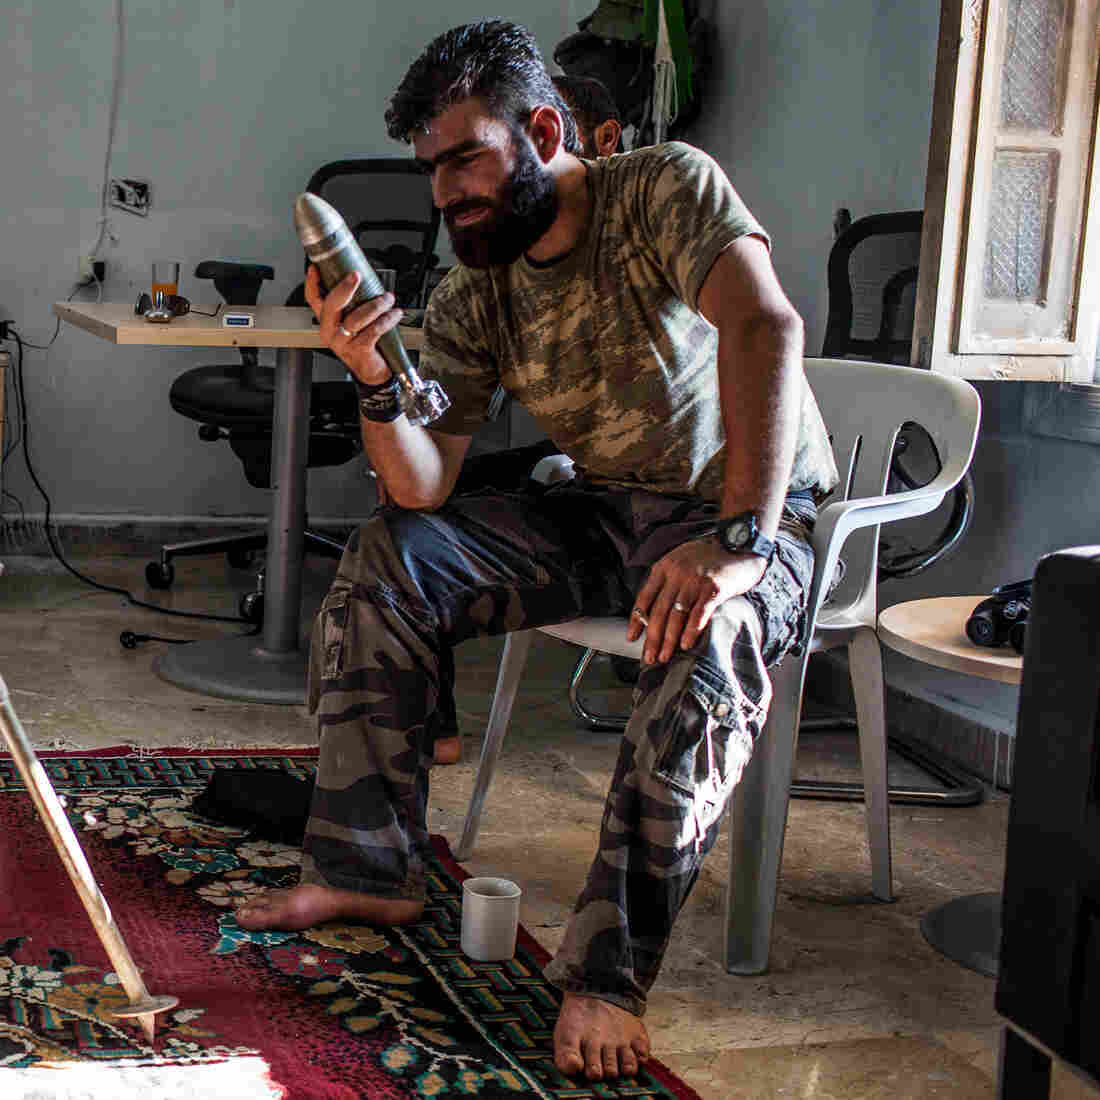 Syrian Rebels Make Do With Hodgepodge Of Weapons